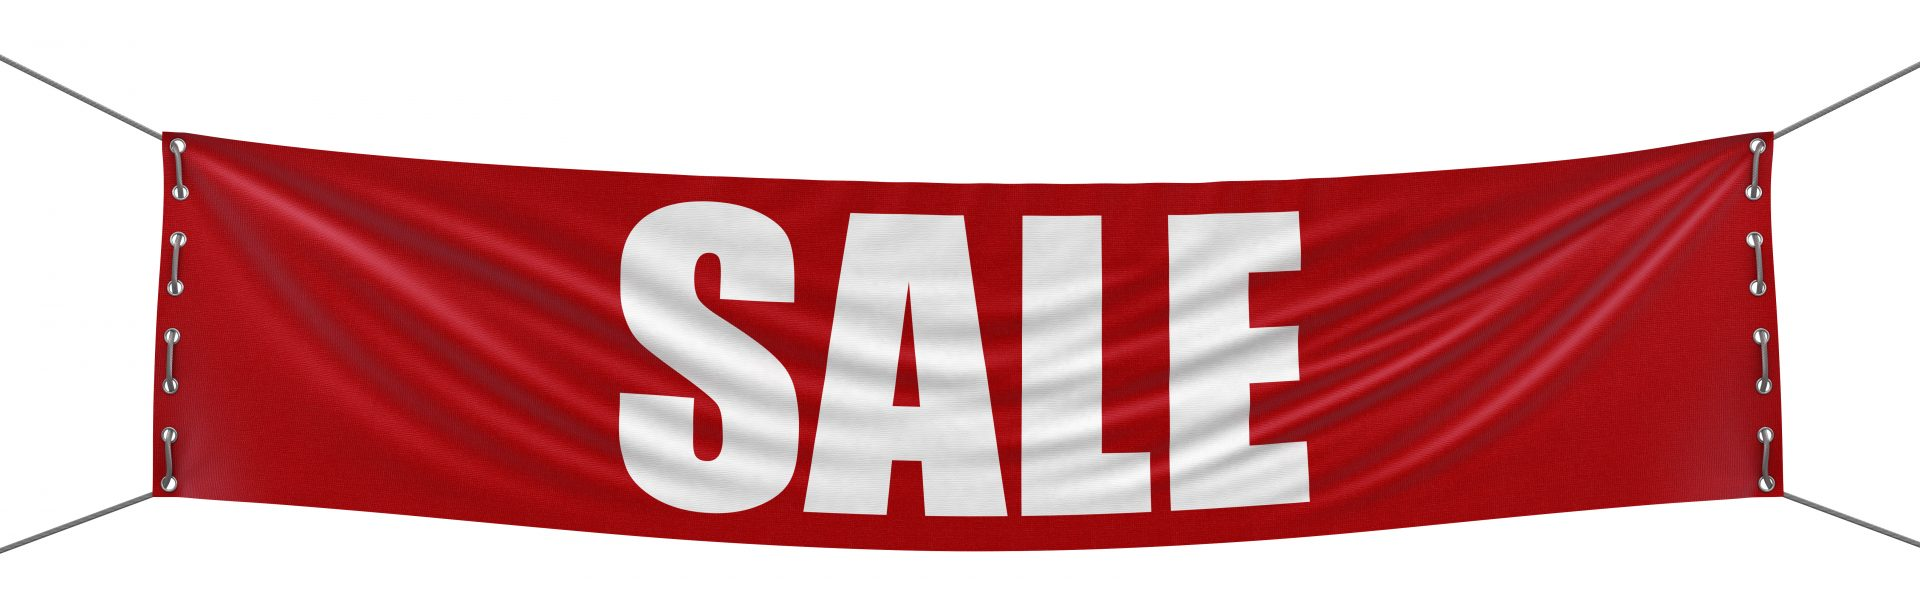 Sale Banner (clipping path included)